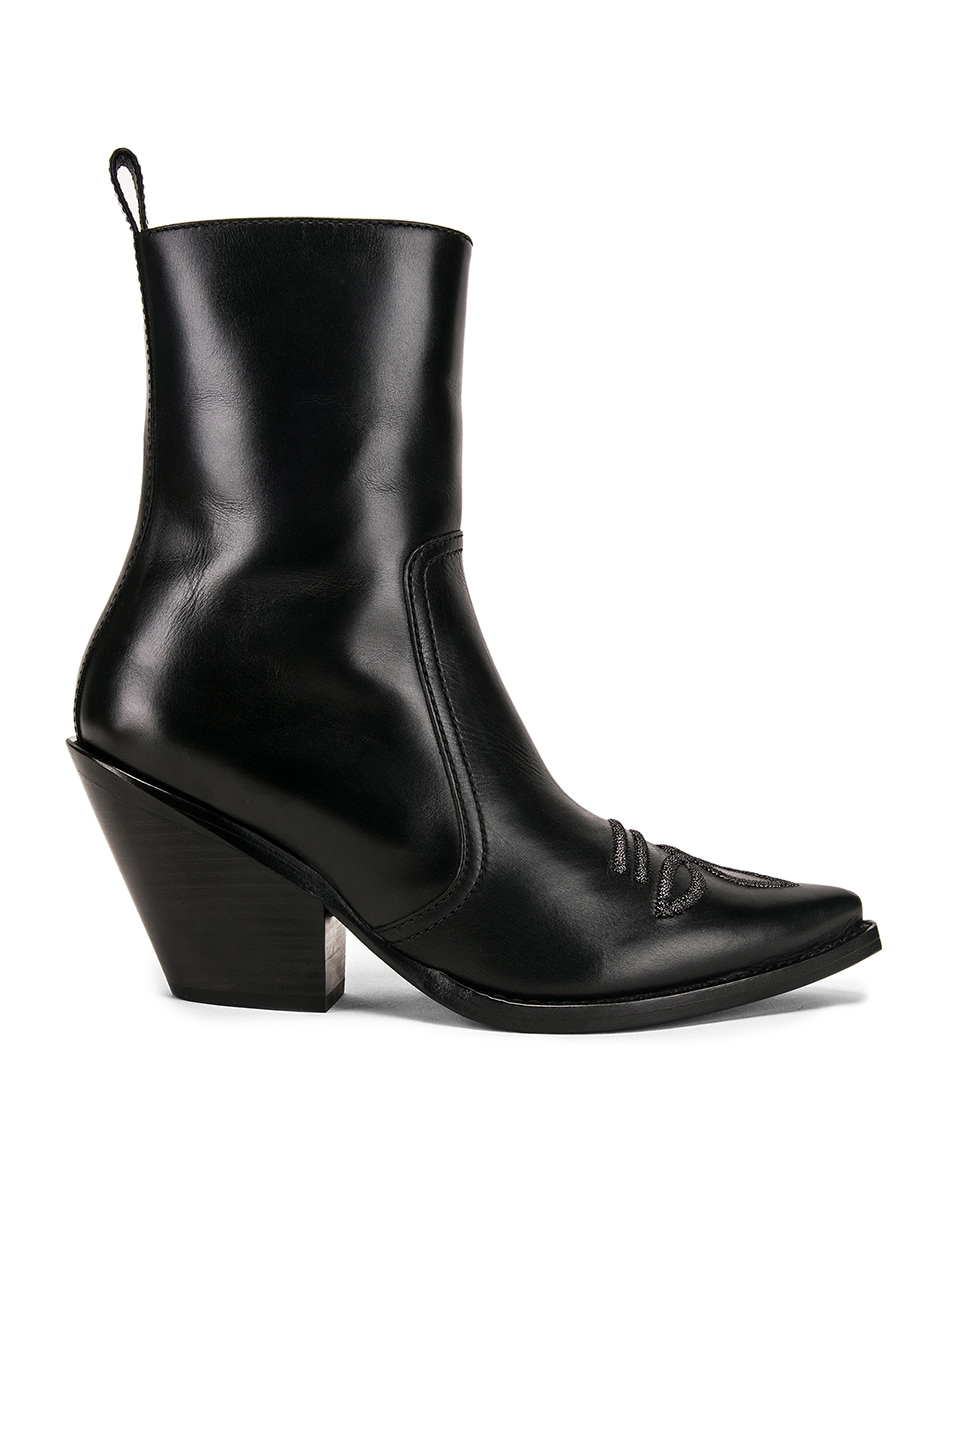 Image 1 of Redemption Ankle Boot with Embroidery in Black